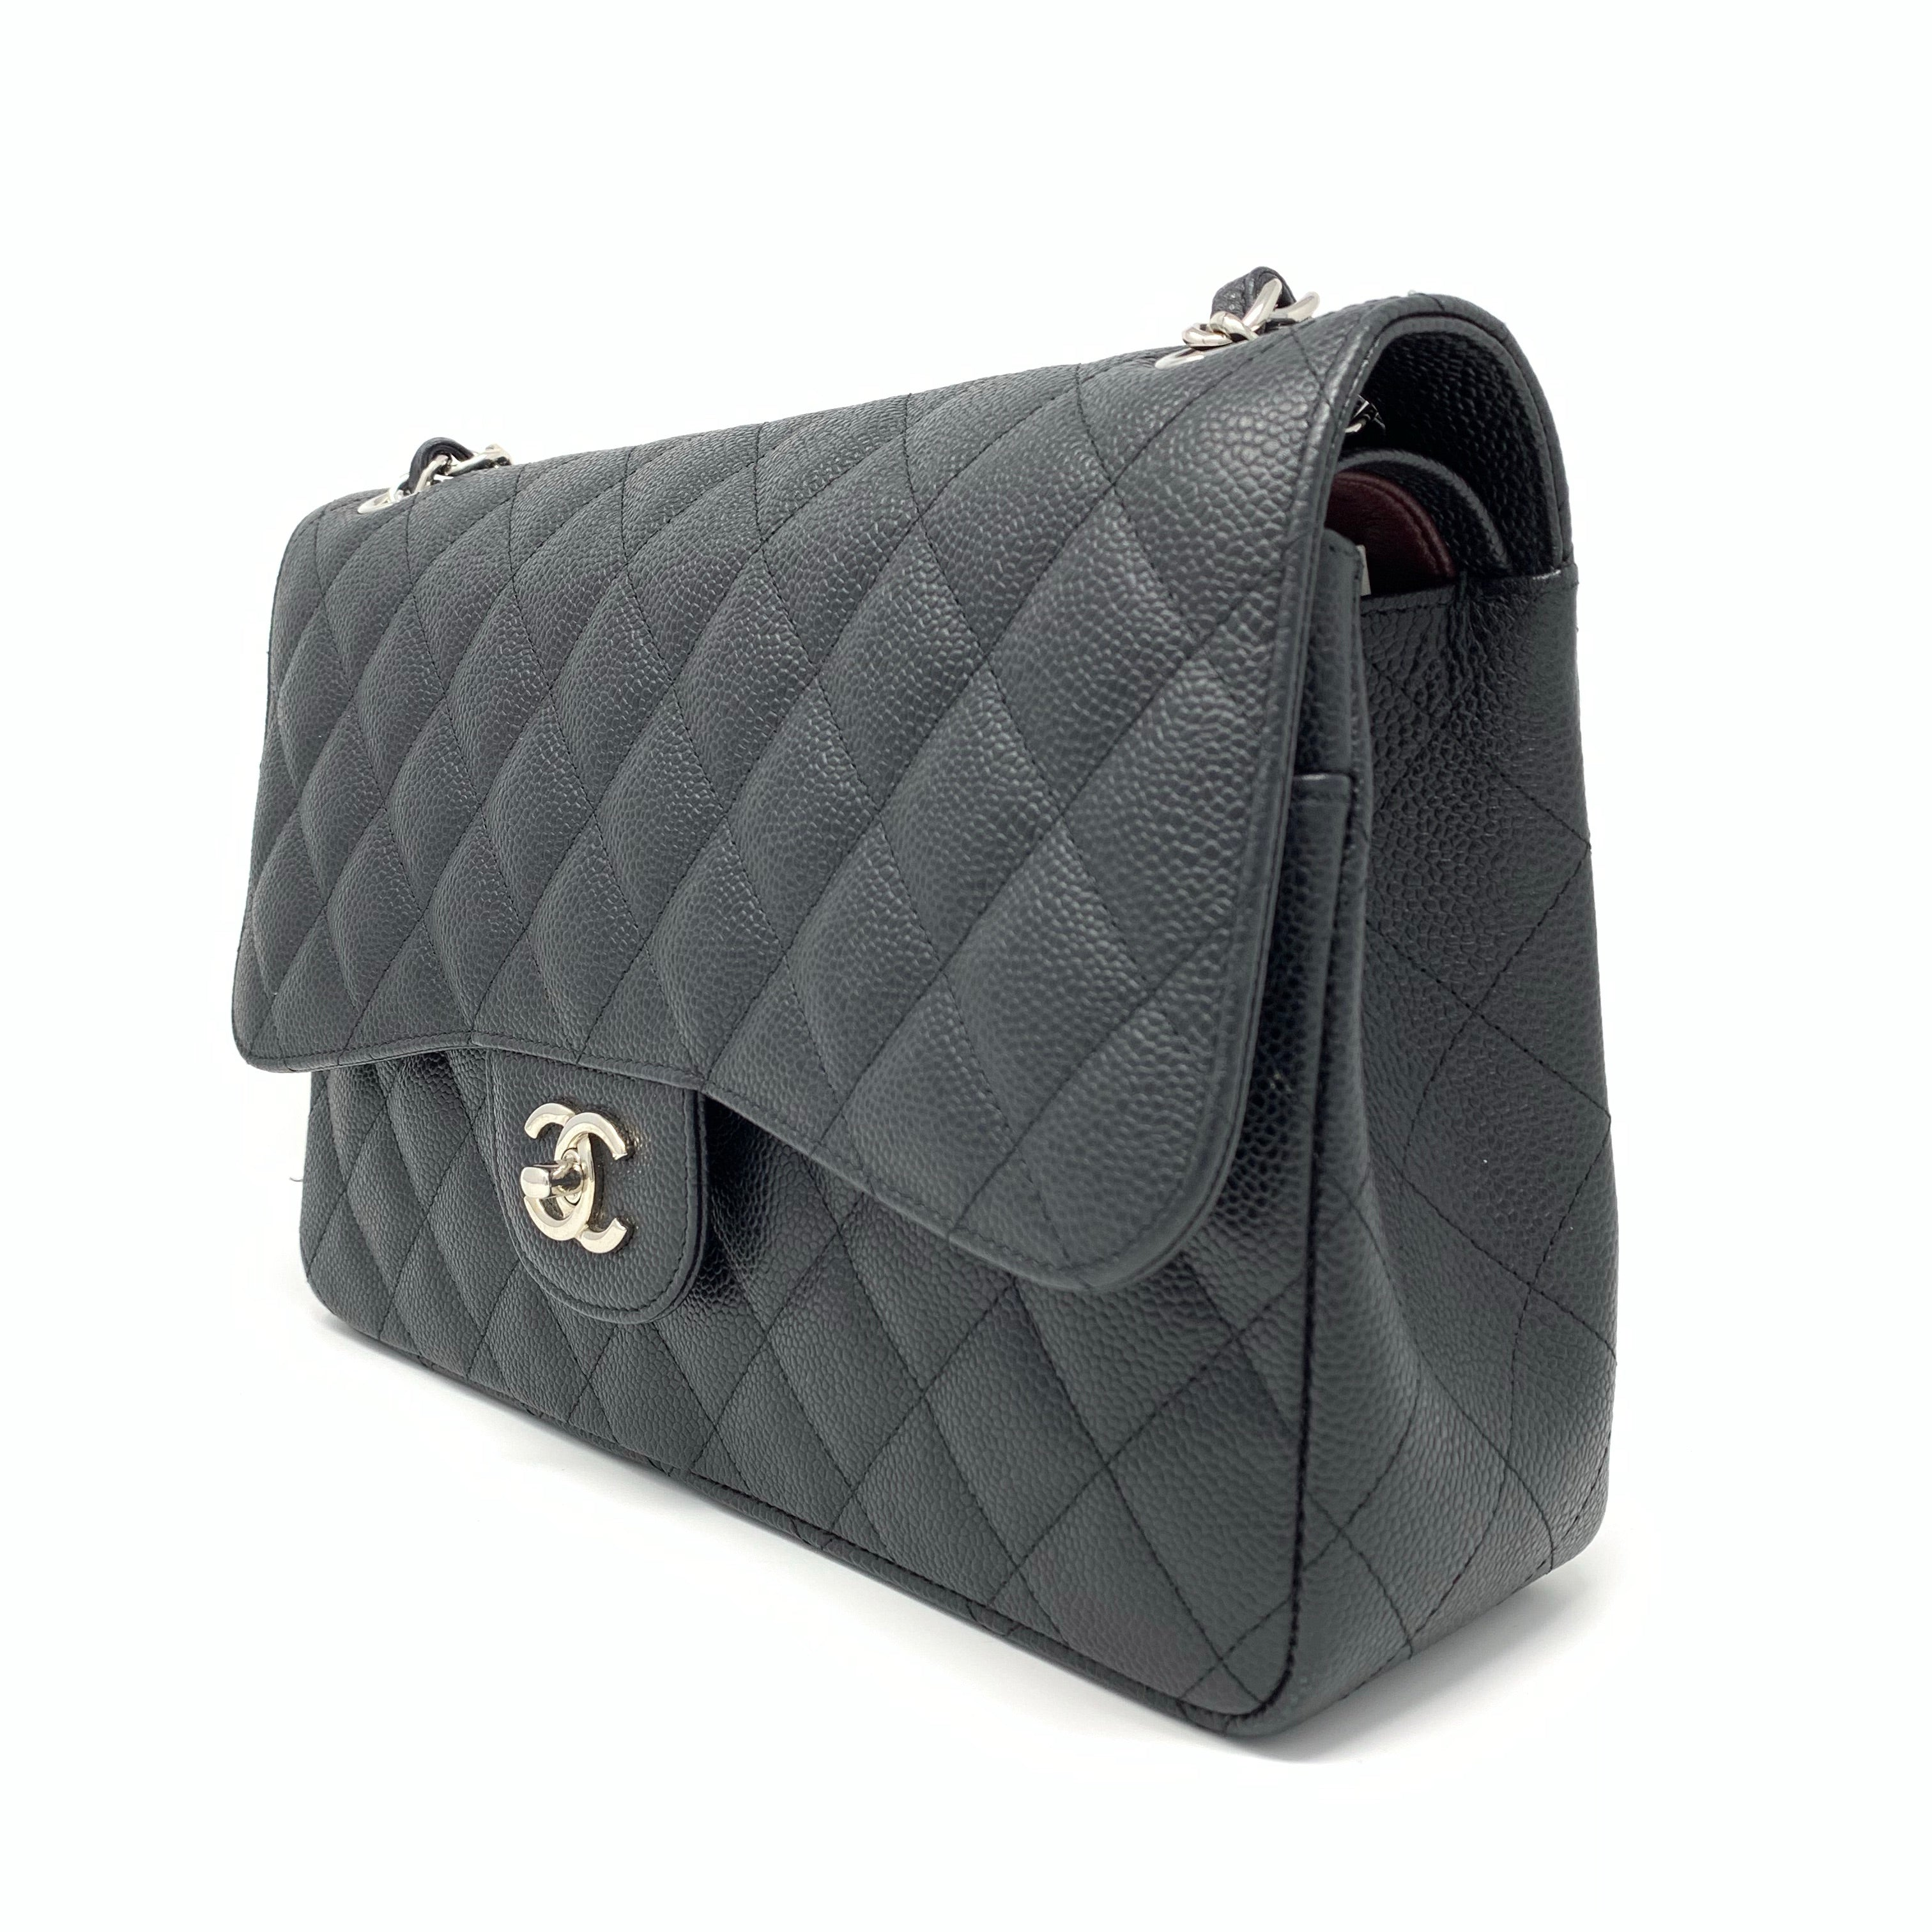 573cabc6380d63 Chanel Classic Caviar Black Quilted Jumbo Double Flap Bag – Brand ...